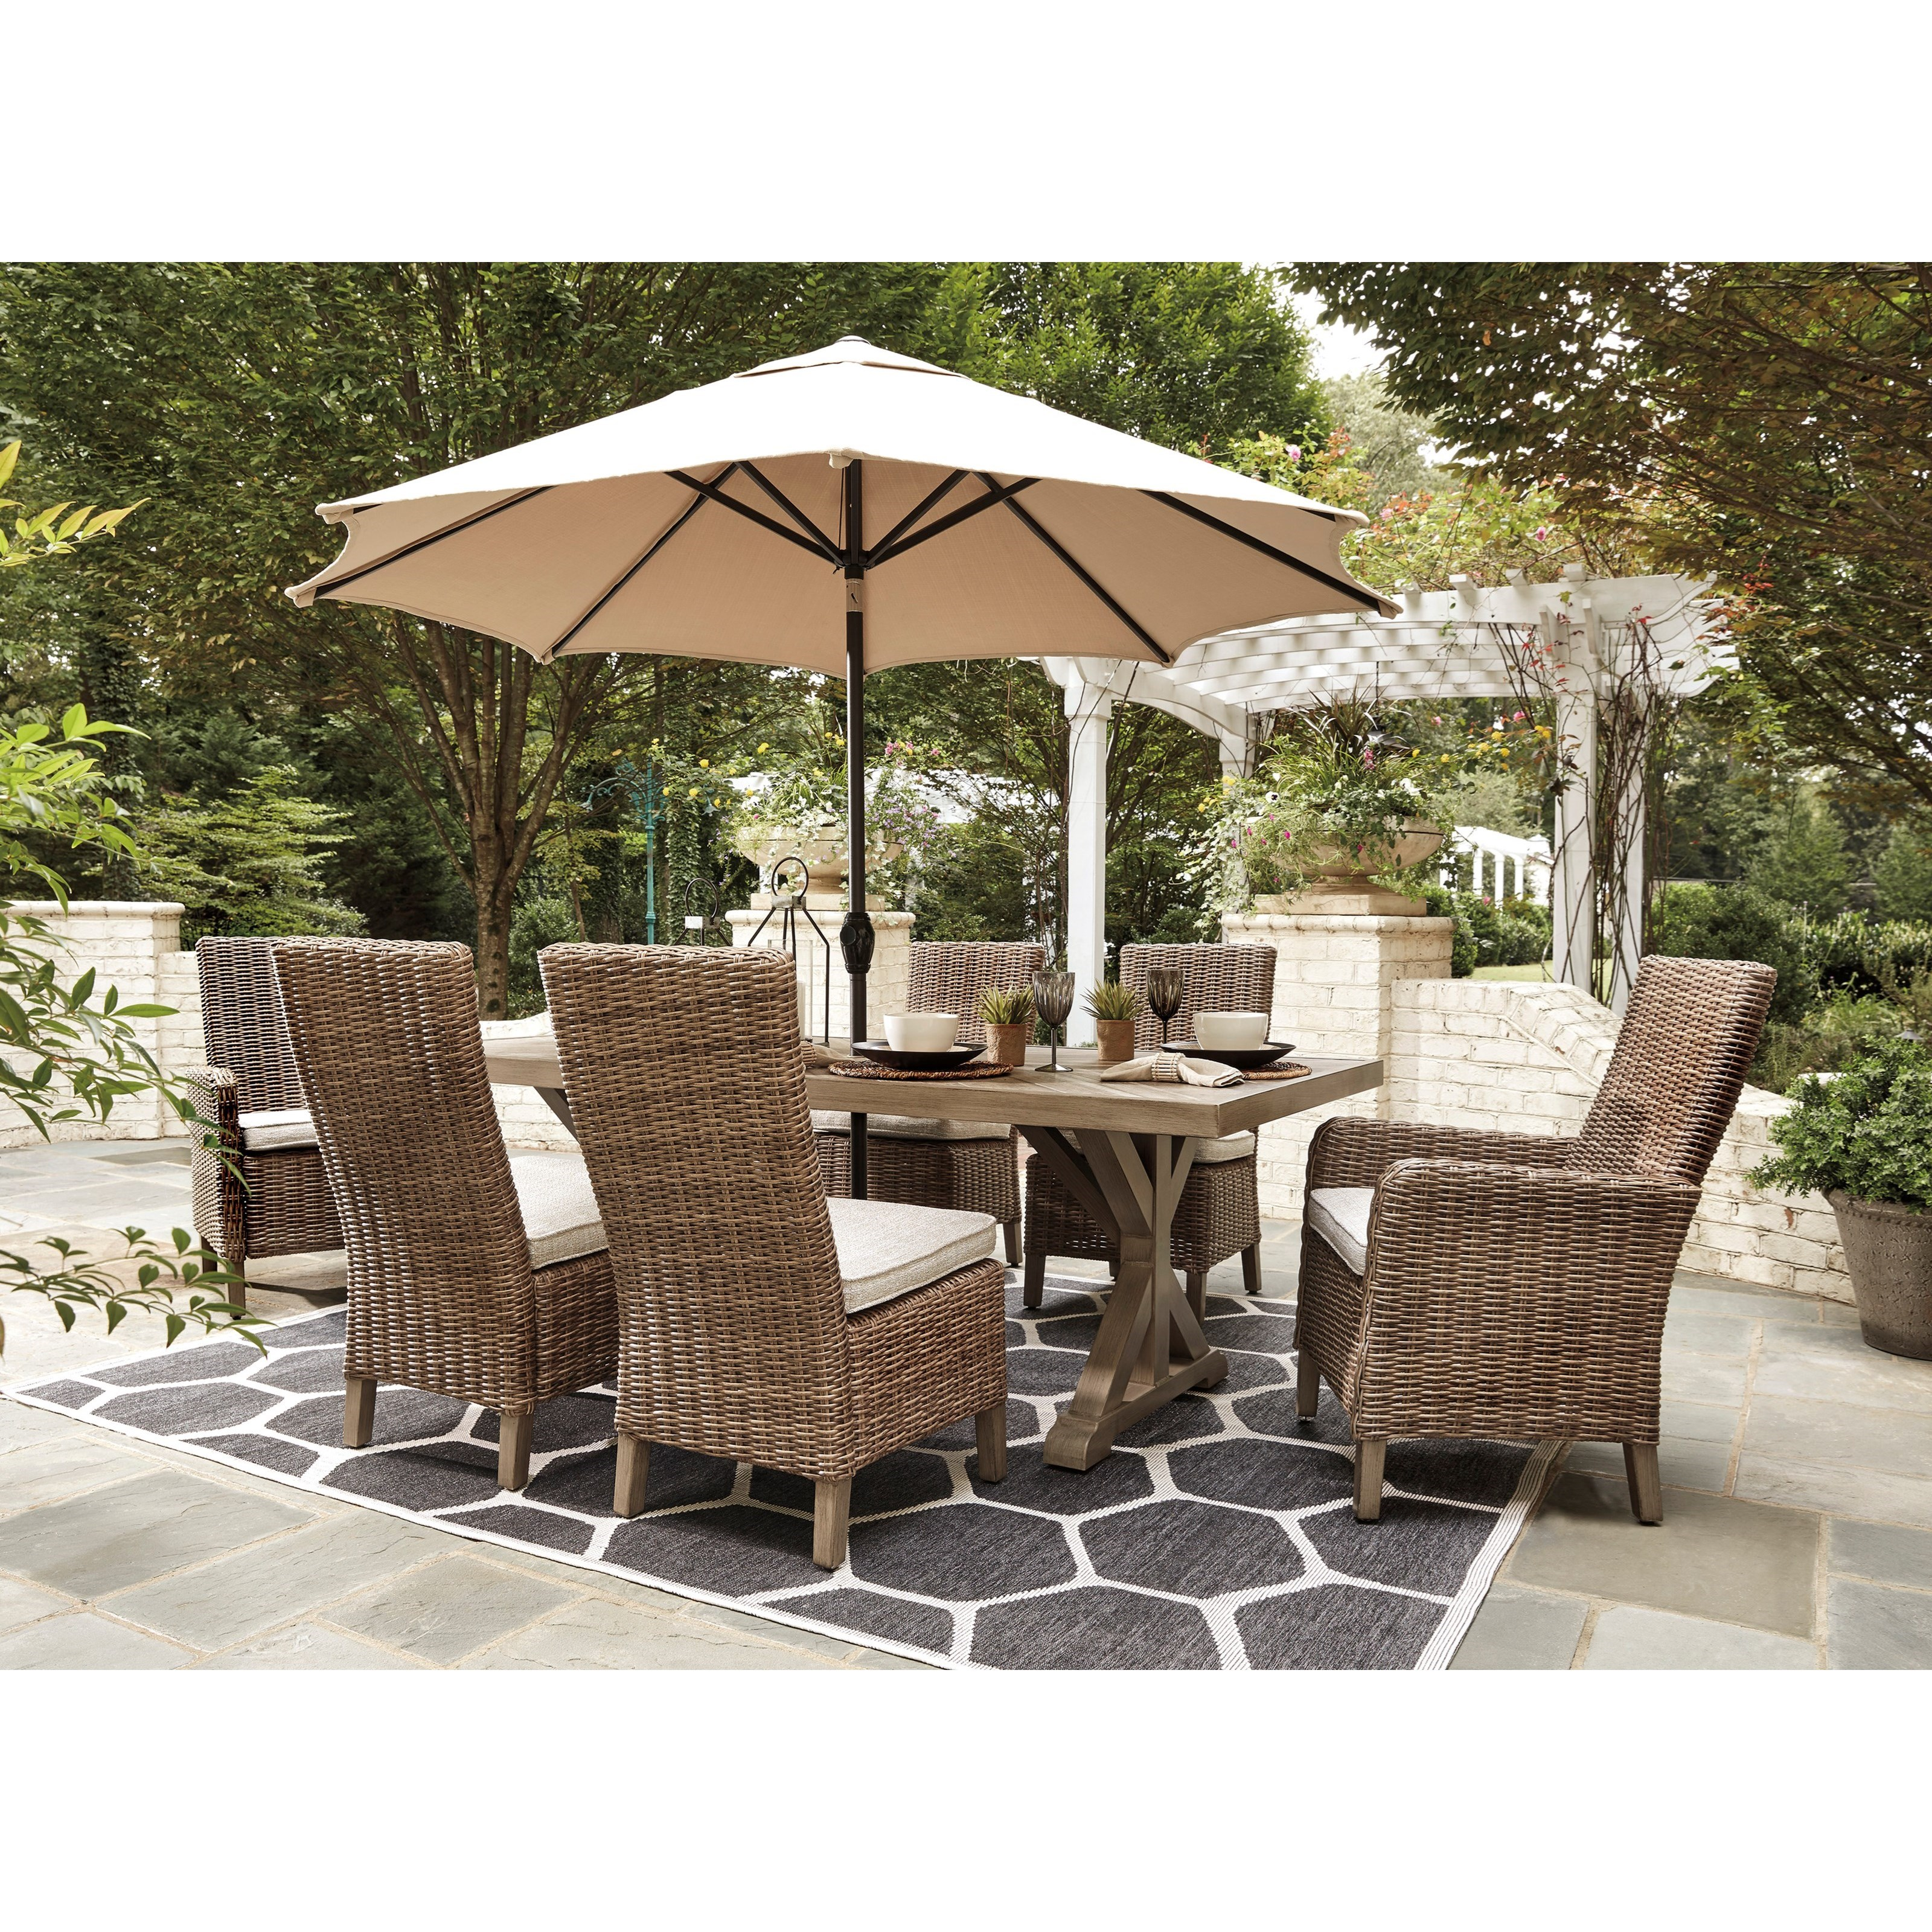 Signature Design By Ashley Furniture Hayley 7 Piece Dining: Signature Design By Ashley Beachcroft 7 Piece Outdoor